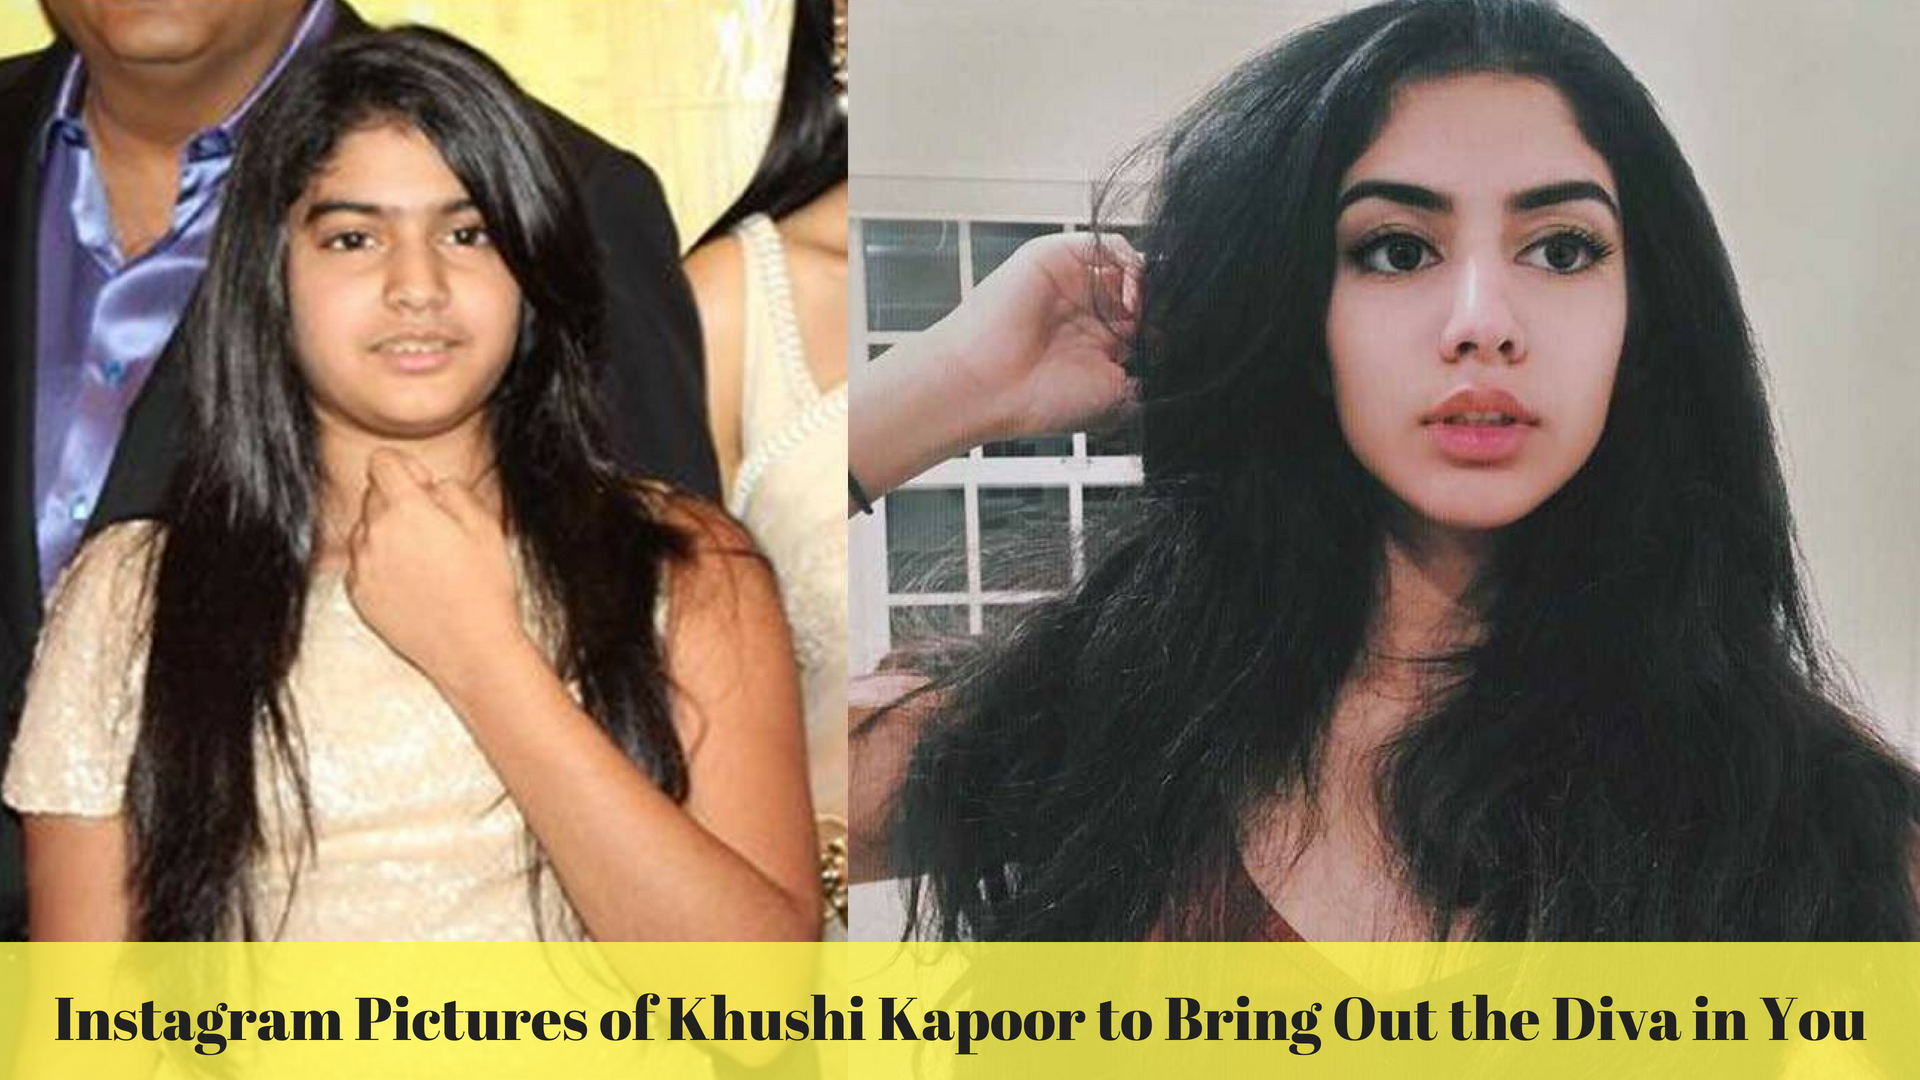 Instagram Pictures of Khushi Kapoor to Bring Out the Diva in You